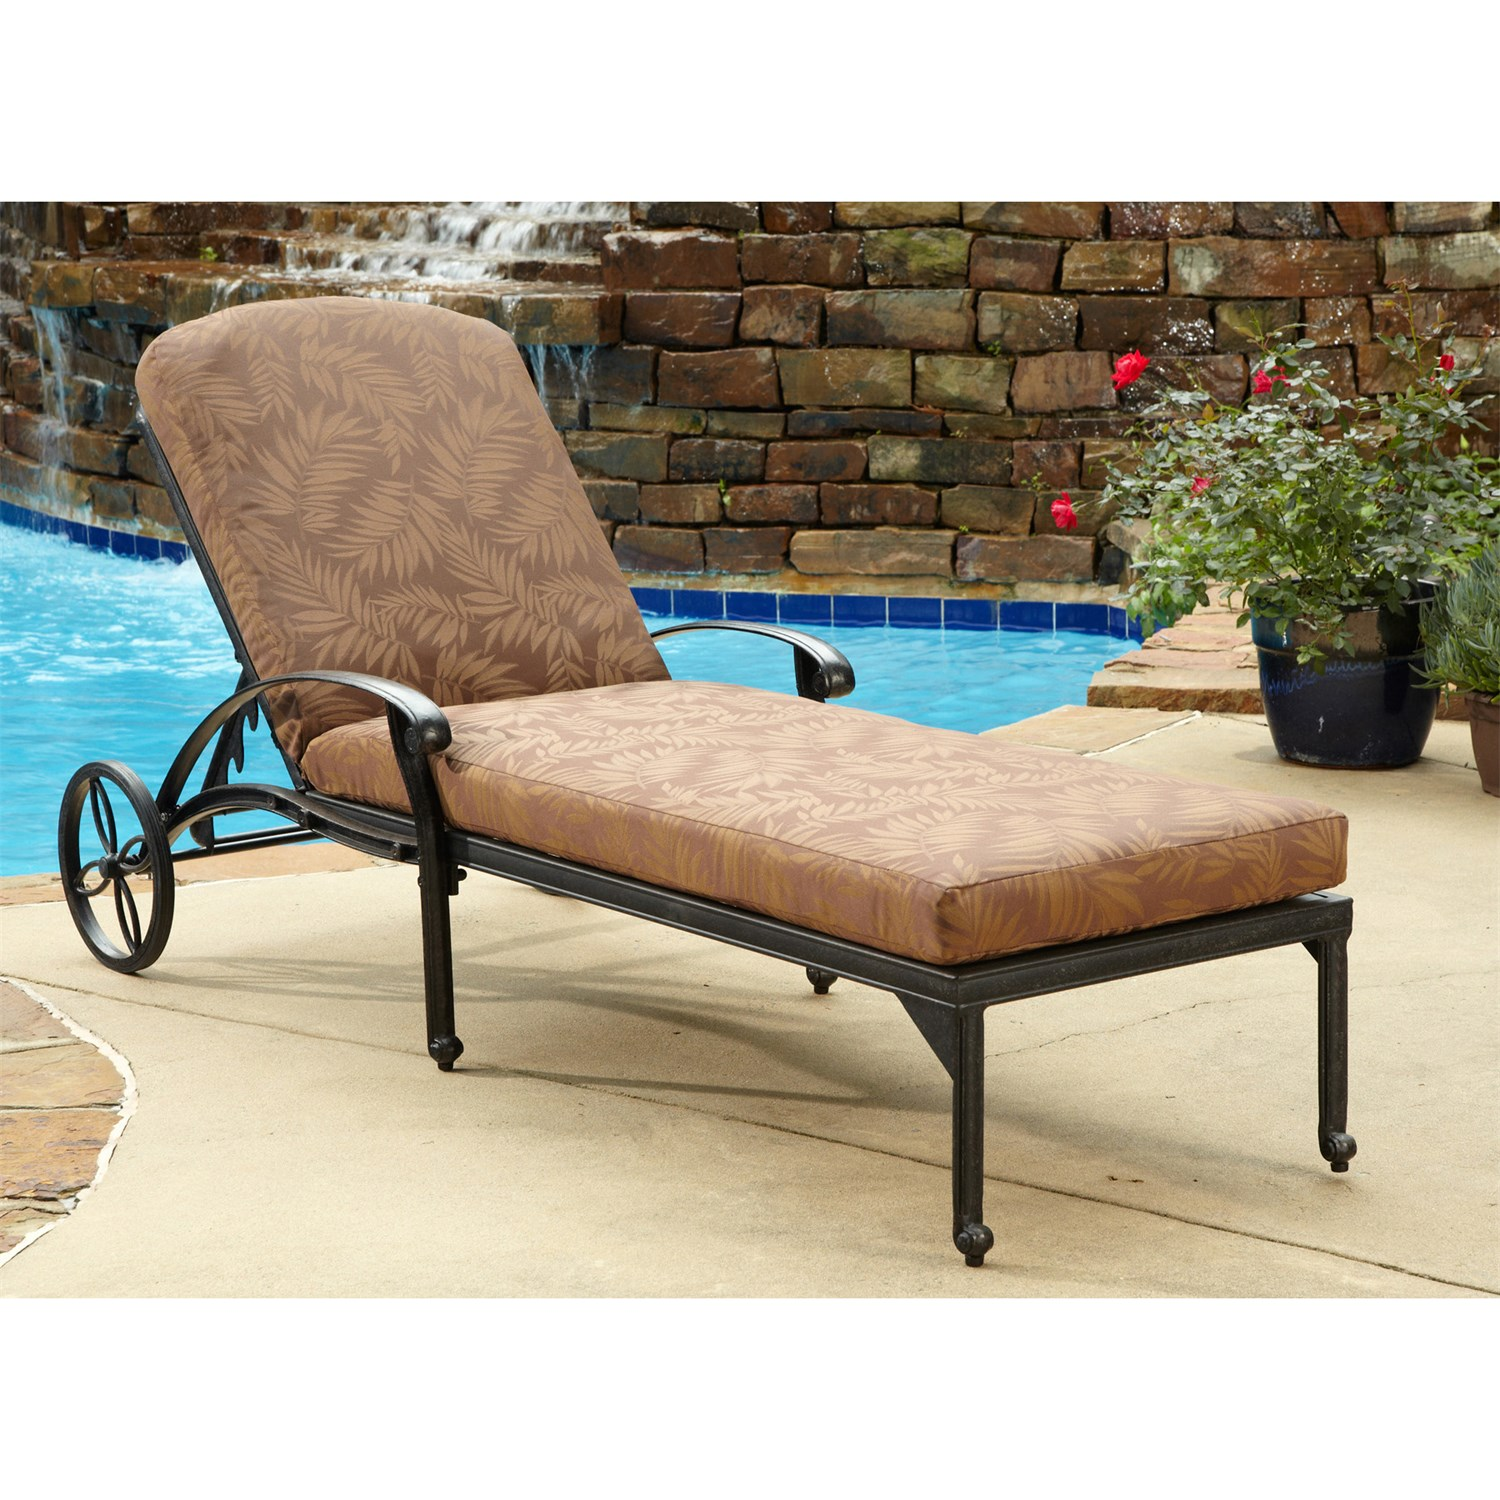 Image of: Patio Chaise Lounge Chairs Floral